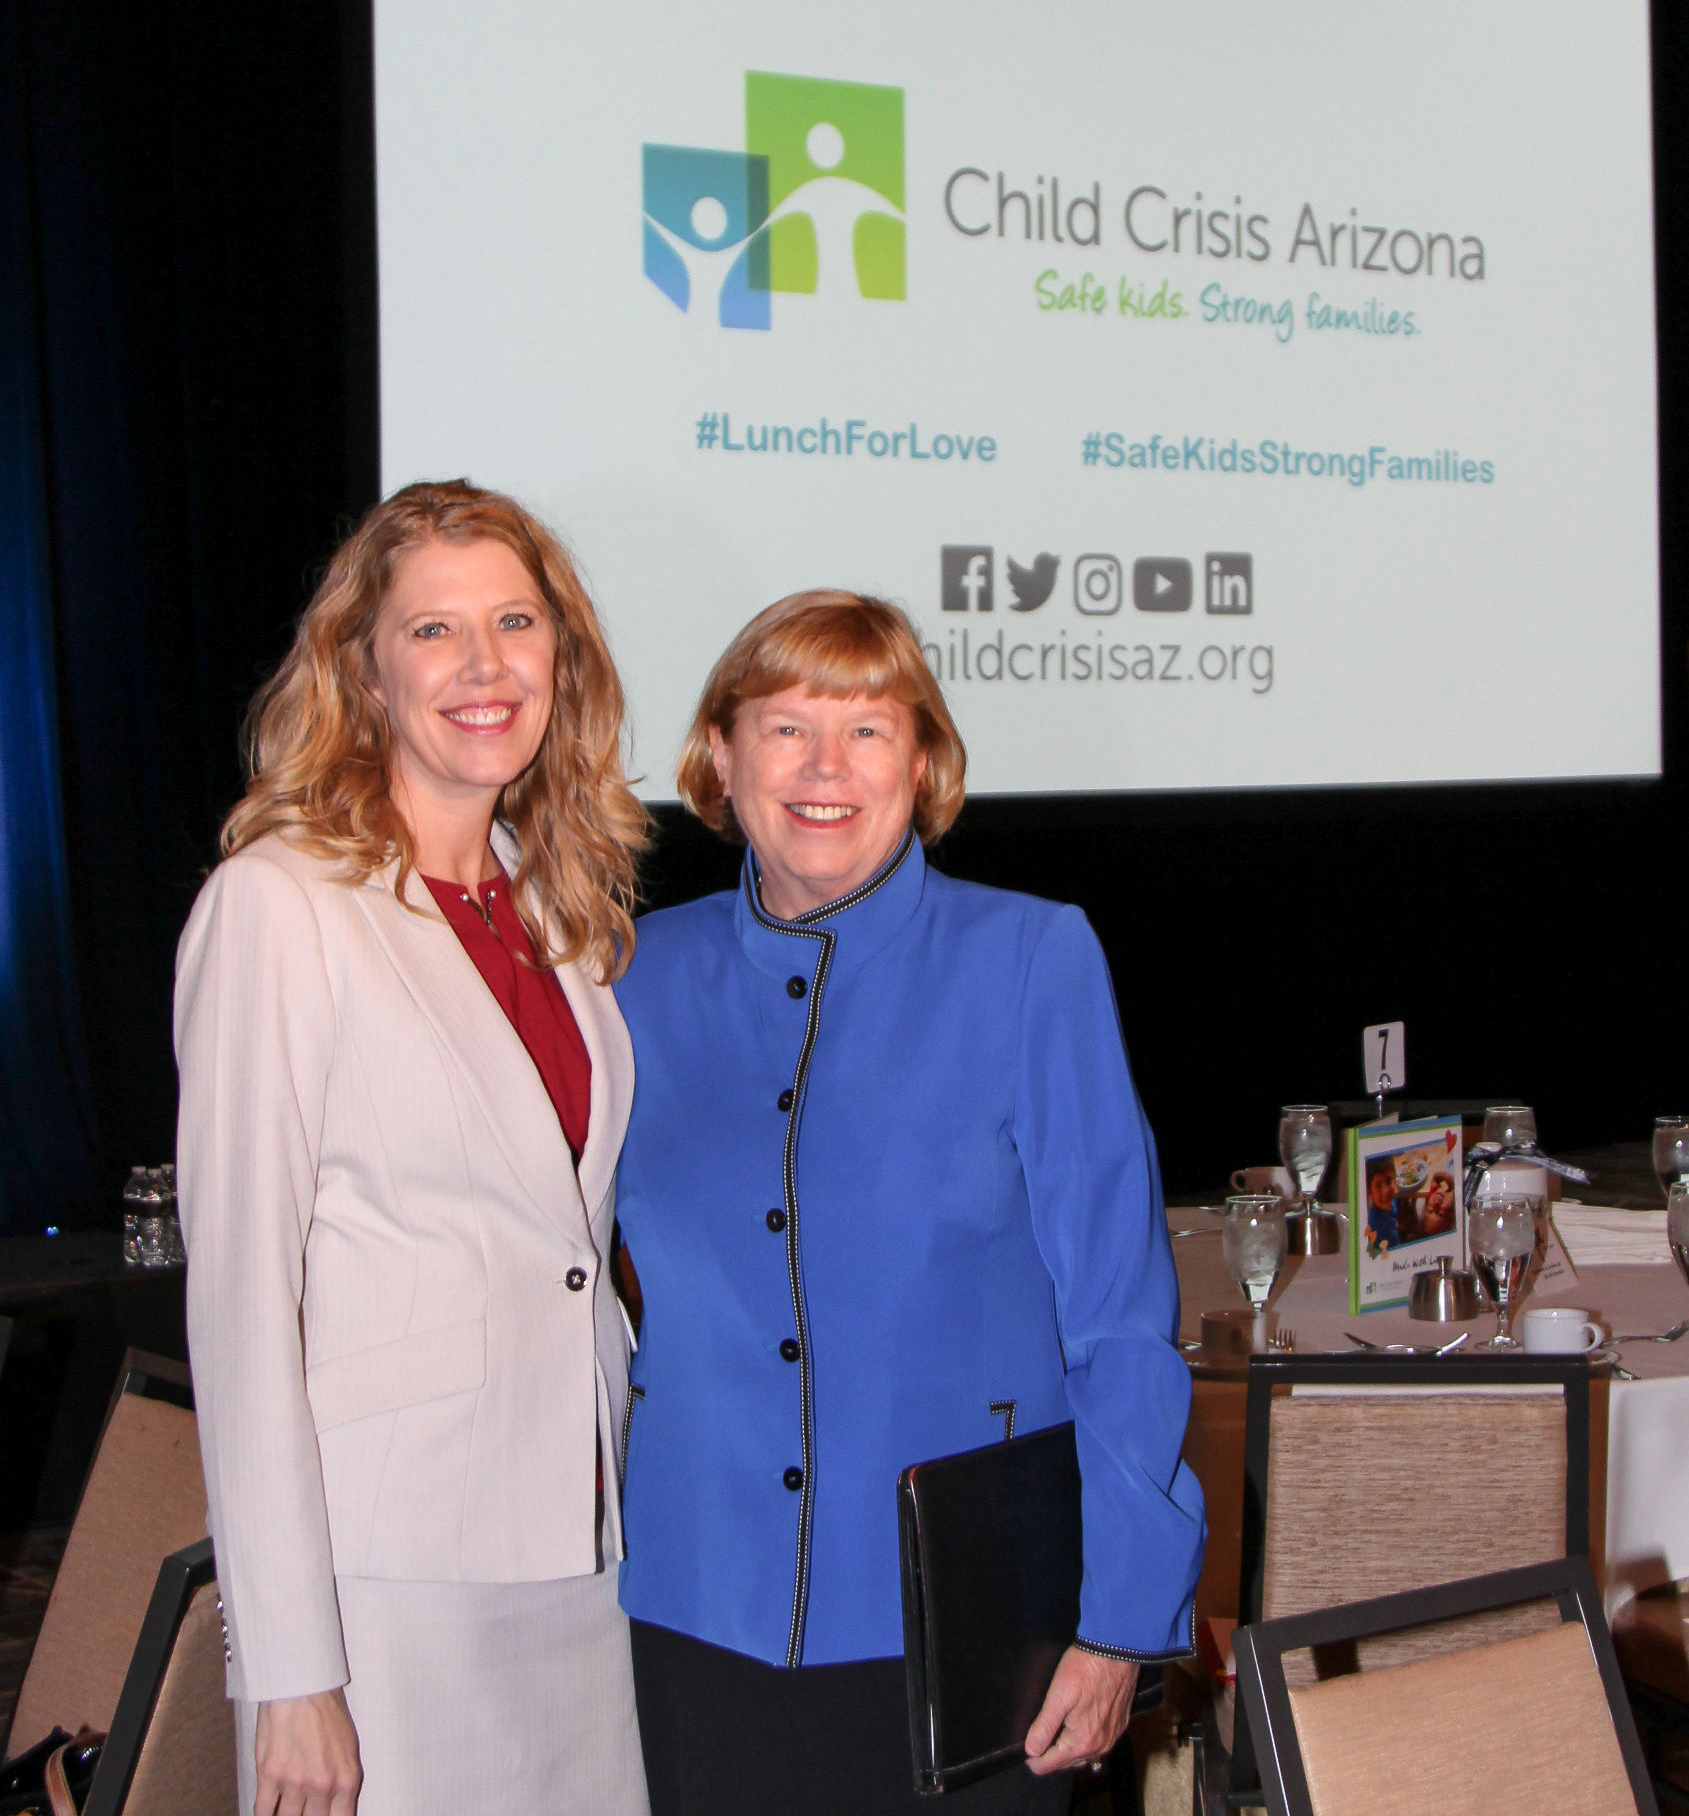 Child Crisis Arizona's Lunch for Love Raises $500,000 for Prevention, Intervention & Education Programs